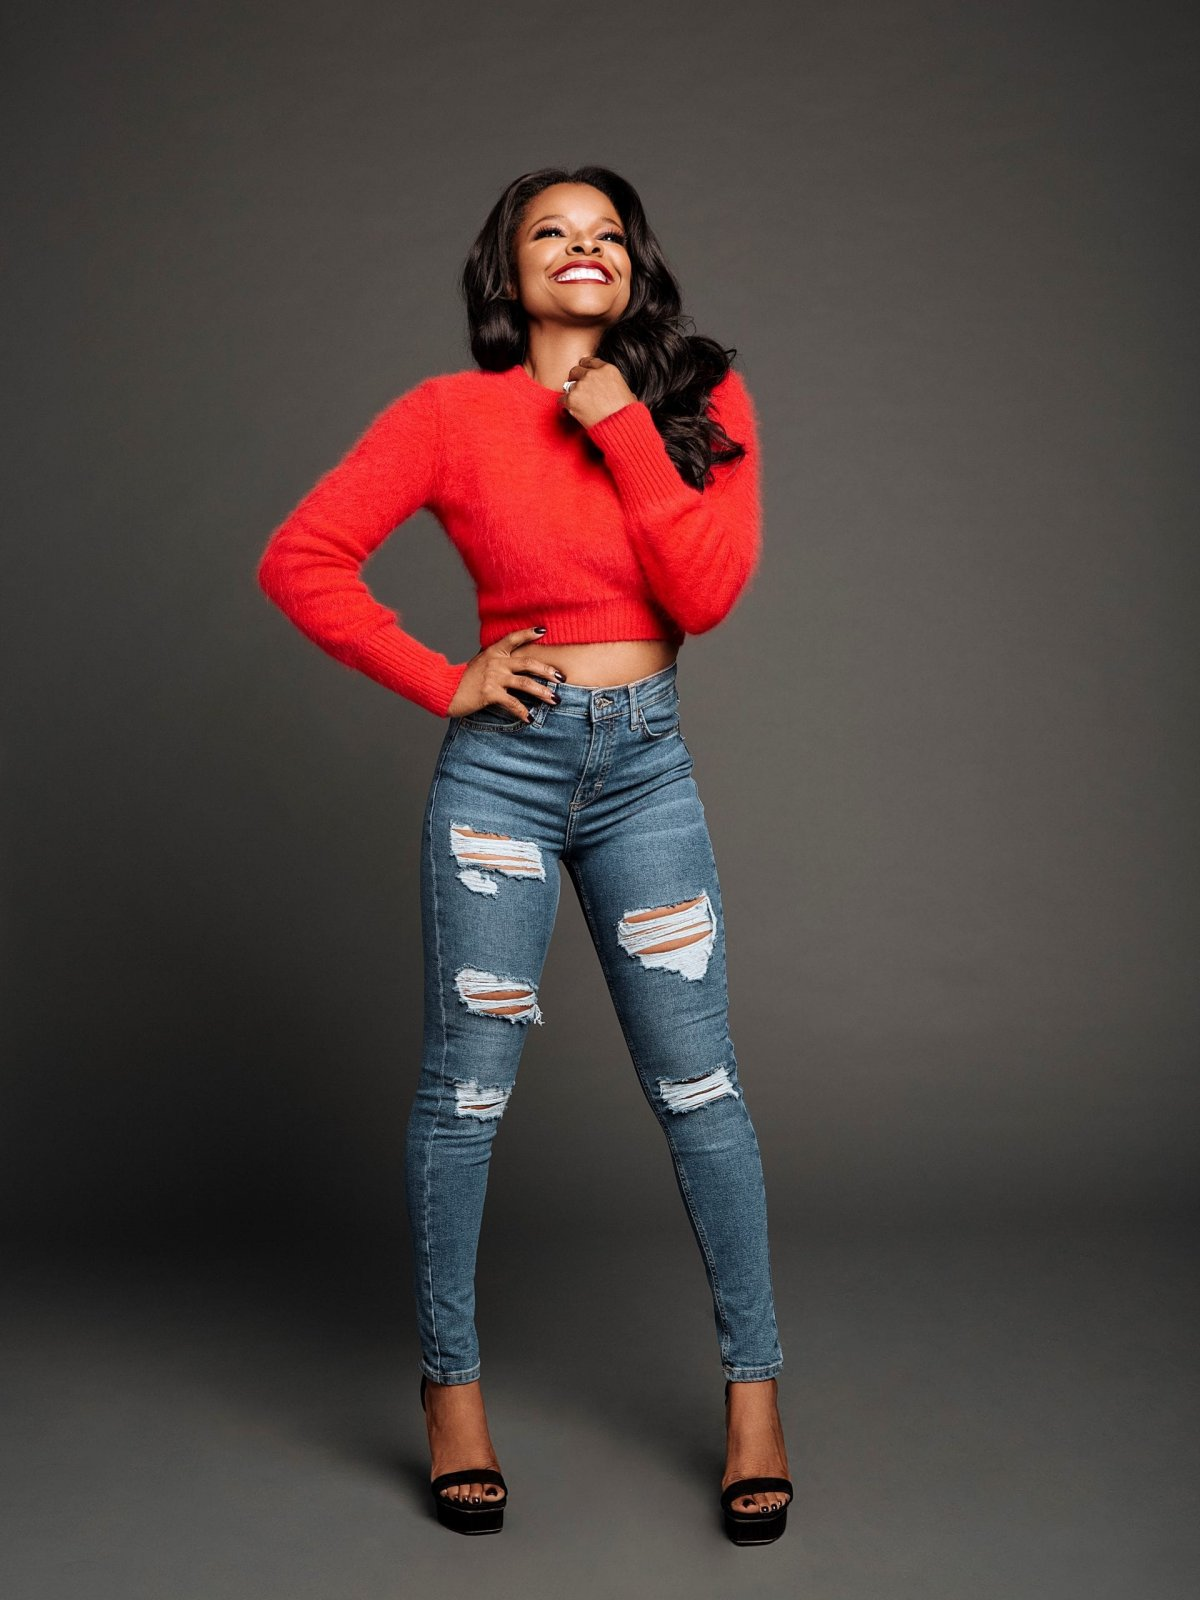 Watch Keesha Sharp video